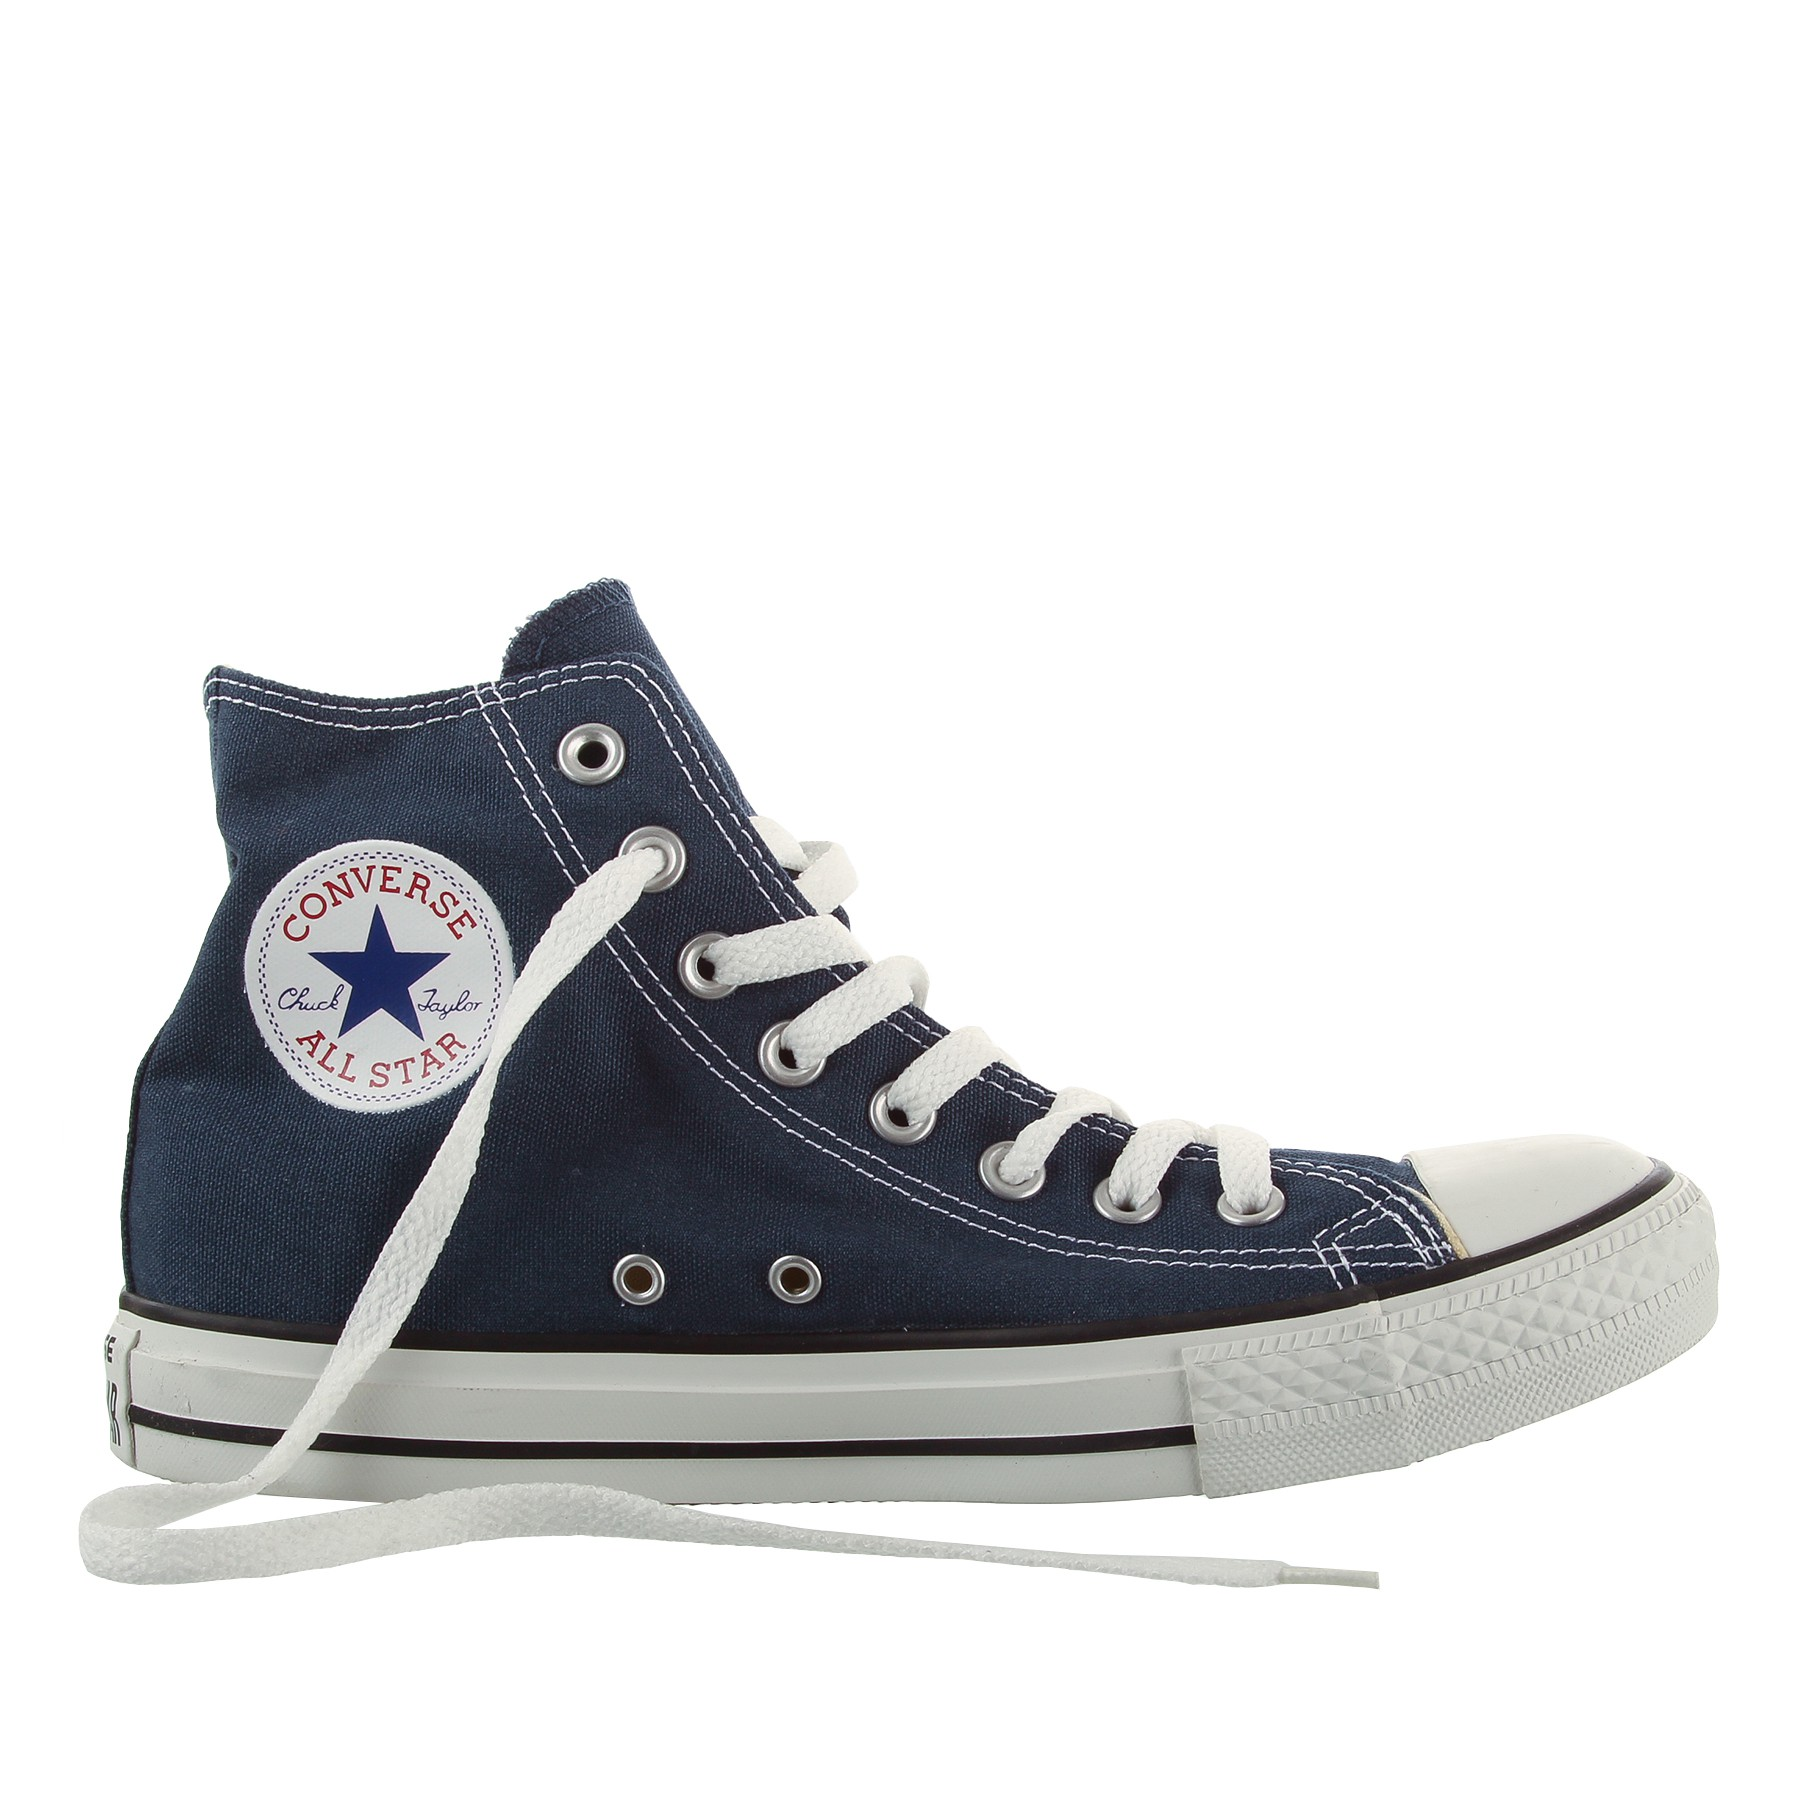 M9622 CT CHUCK TAYLOR AS CORE/NAVY Bild https://cdn03.plentymarkets.com/zsy4vjx32p87/item/images/4285/full/M9622-ama-03.JPG